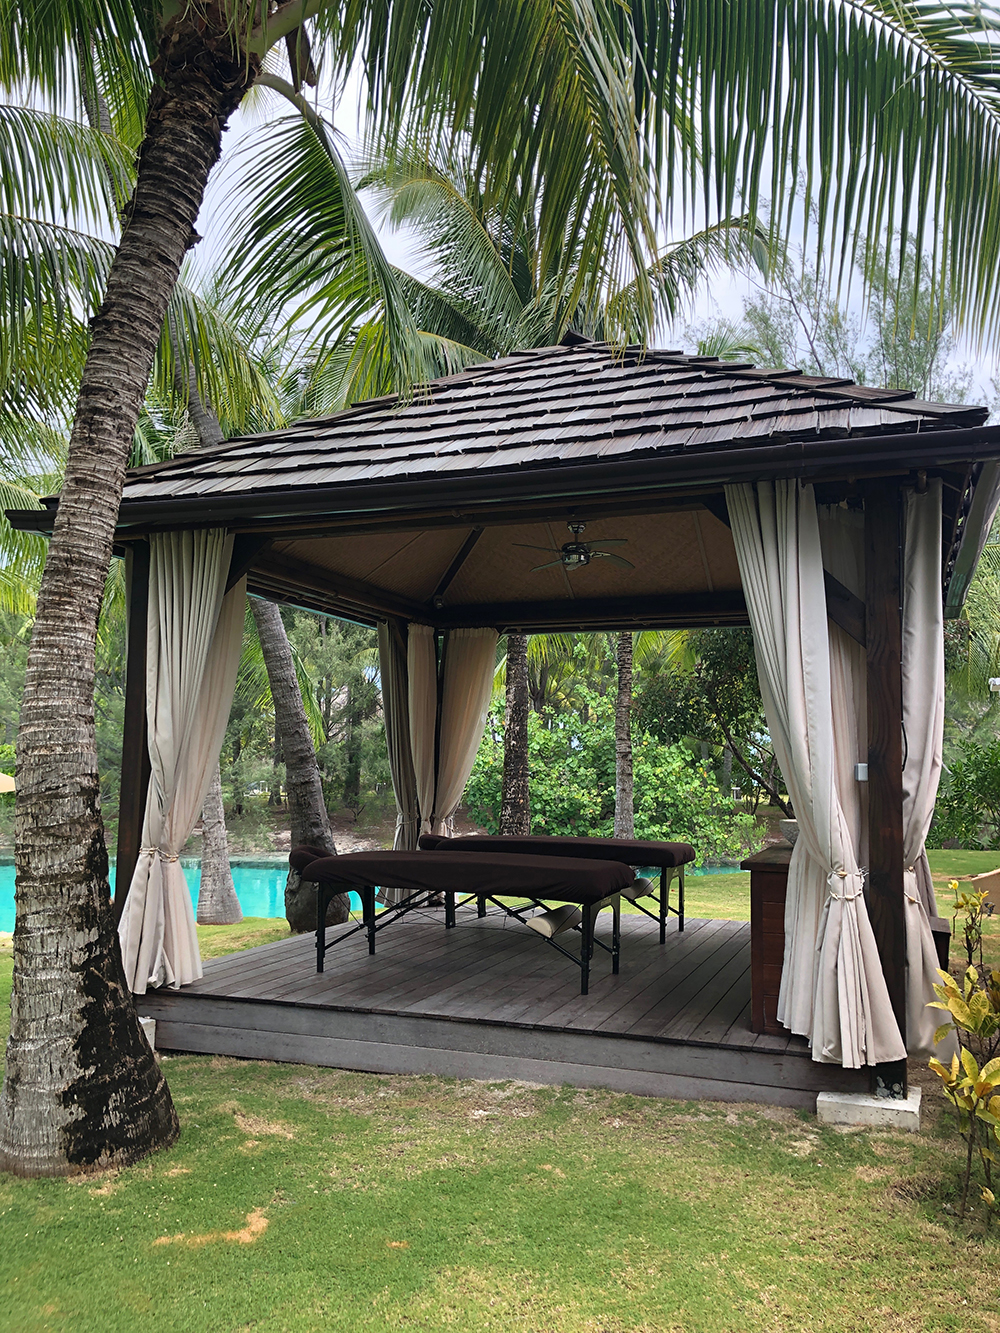 Spa guests can enjoy an outdoor massage next to the private lagoonarium.